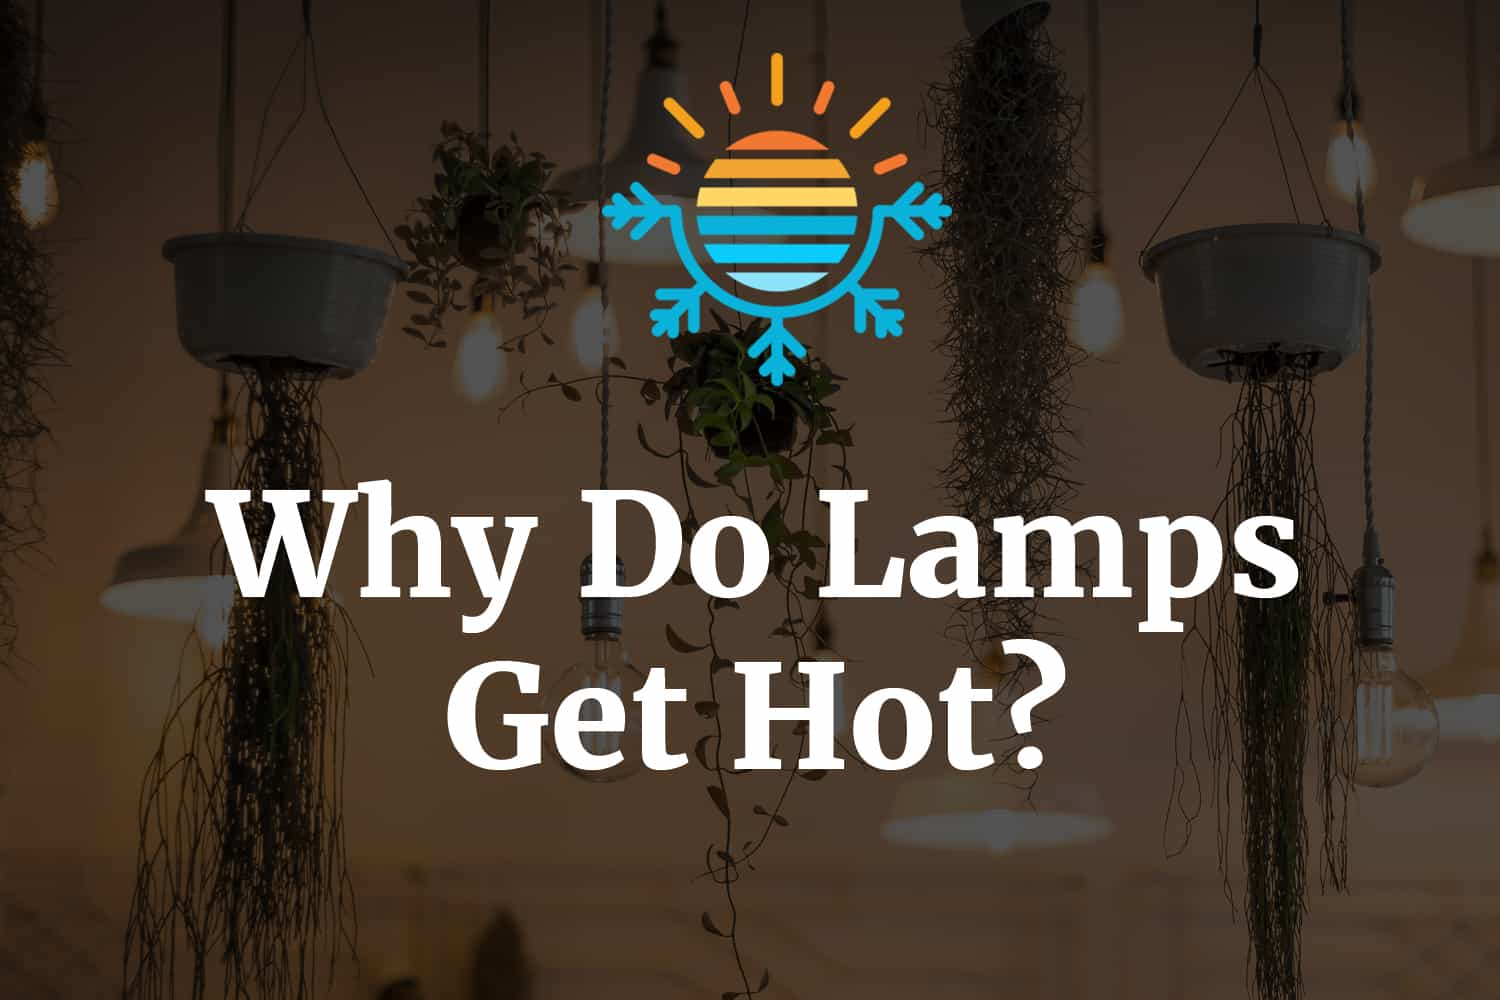 Why do lamps get hot